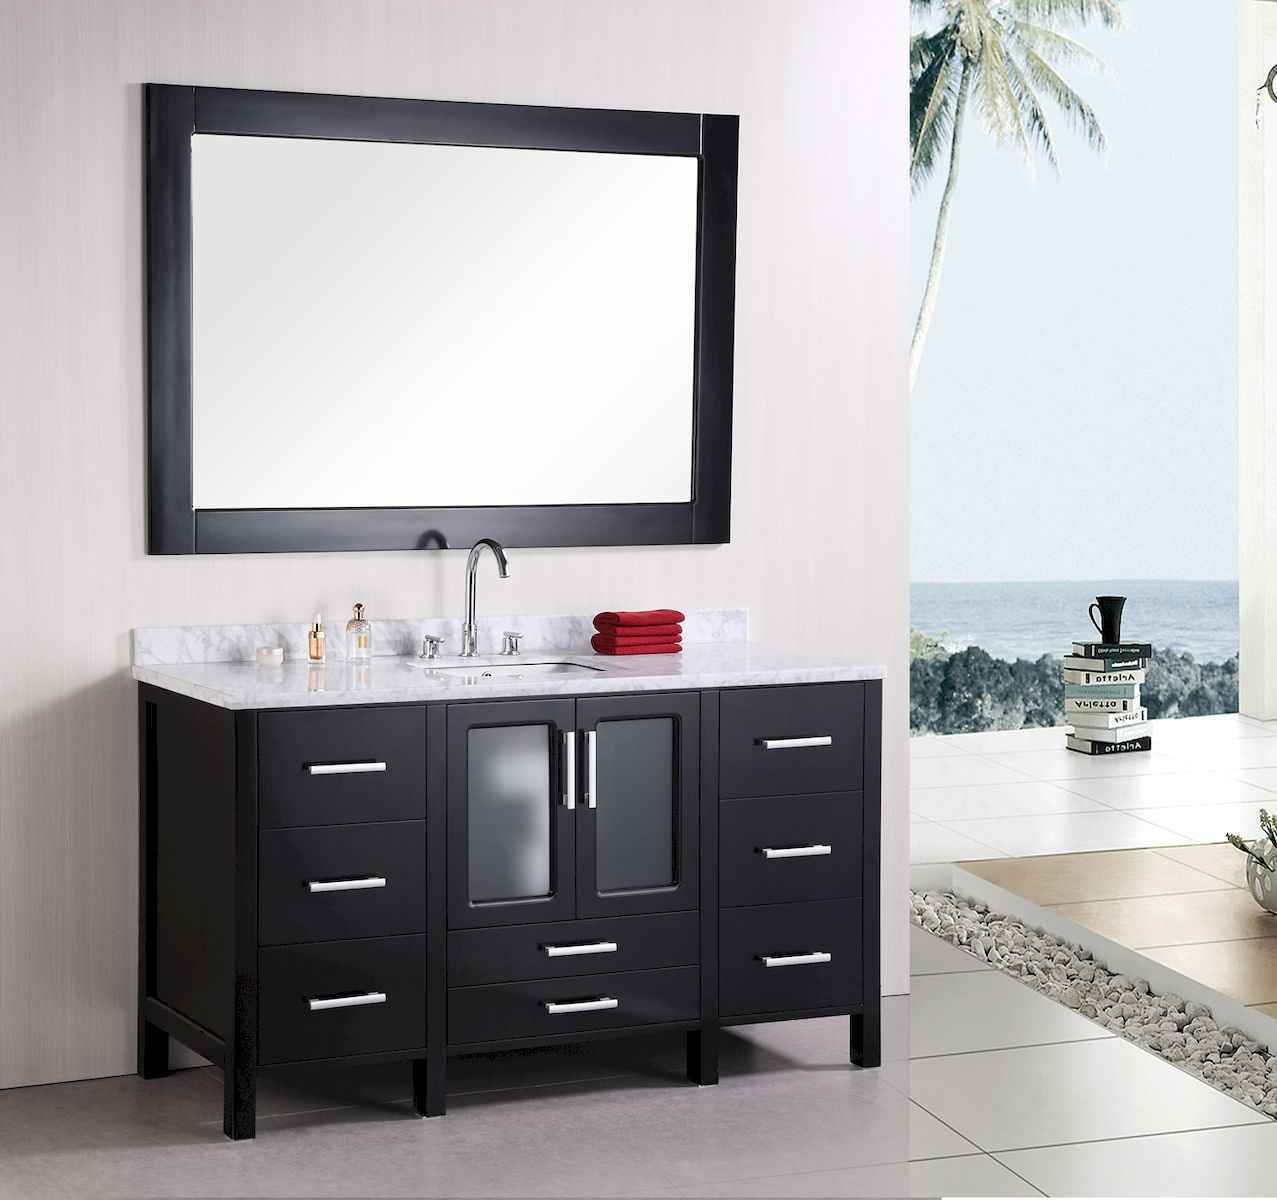 70 modern bathroom cabinets ideas decorations and remodel (16 ...